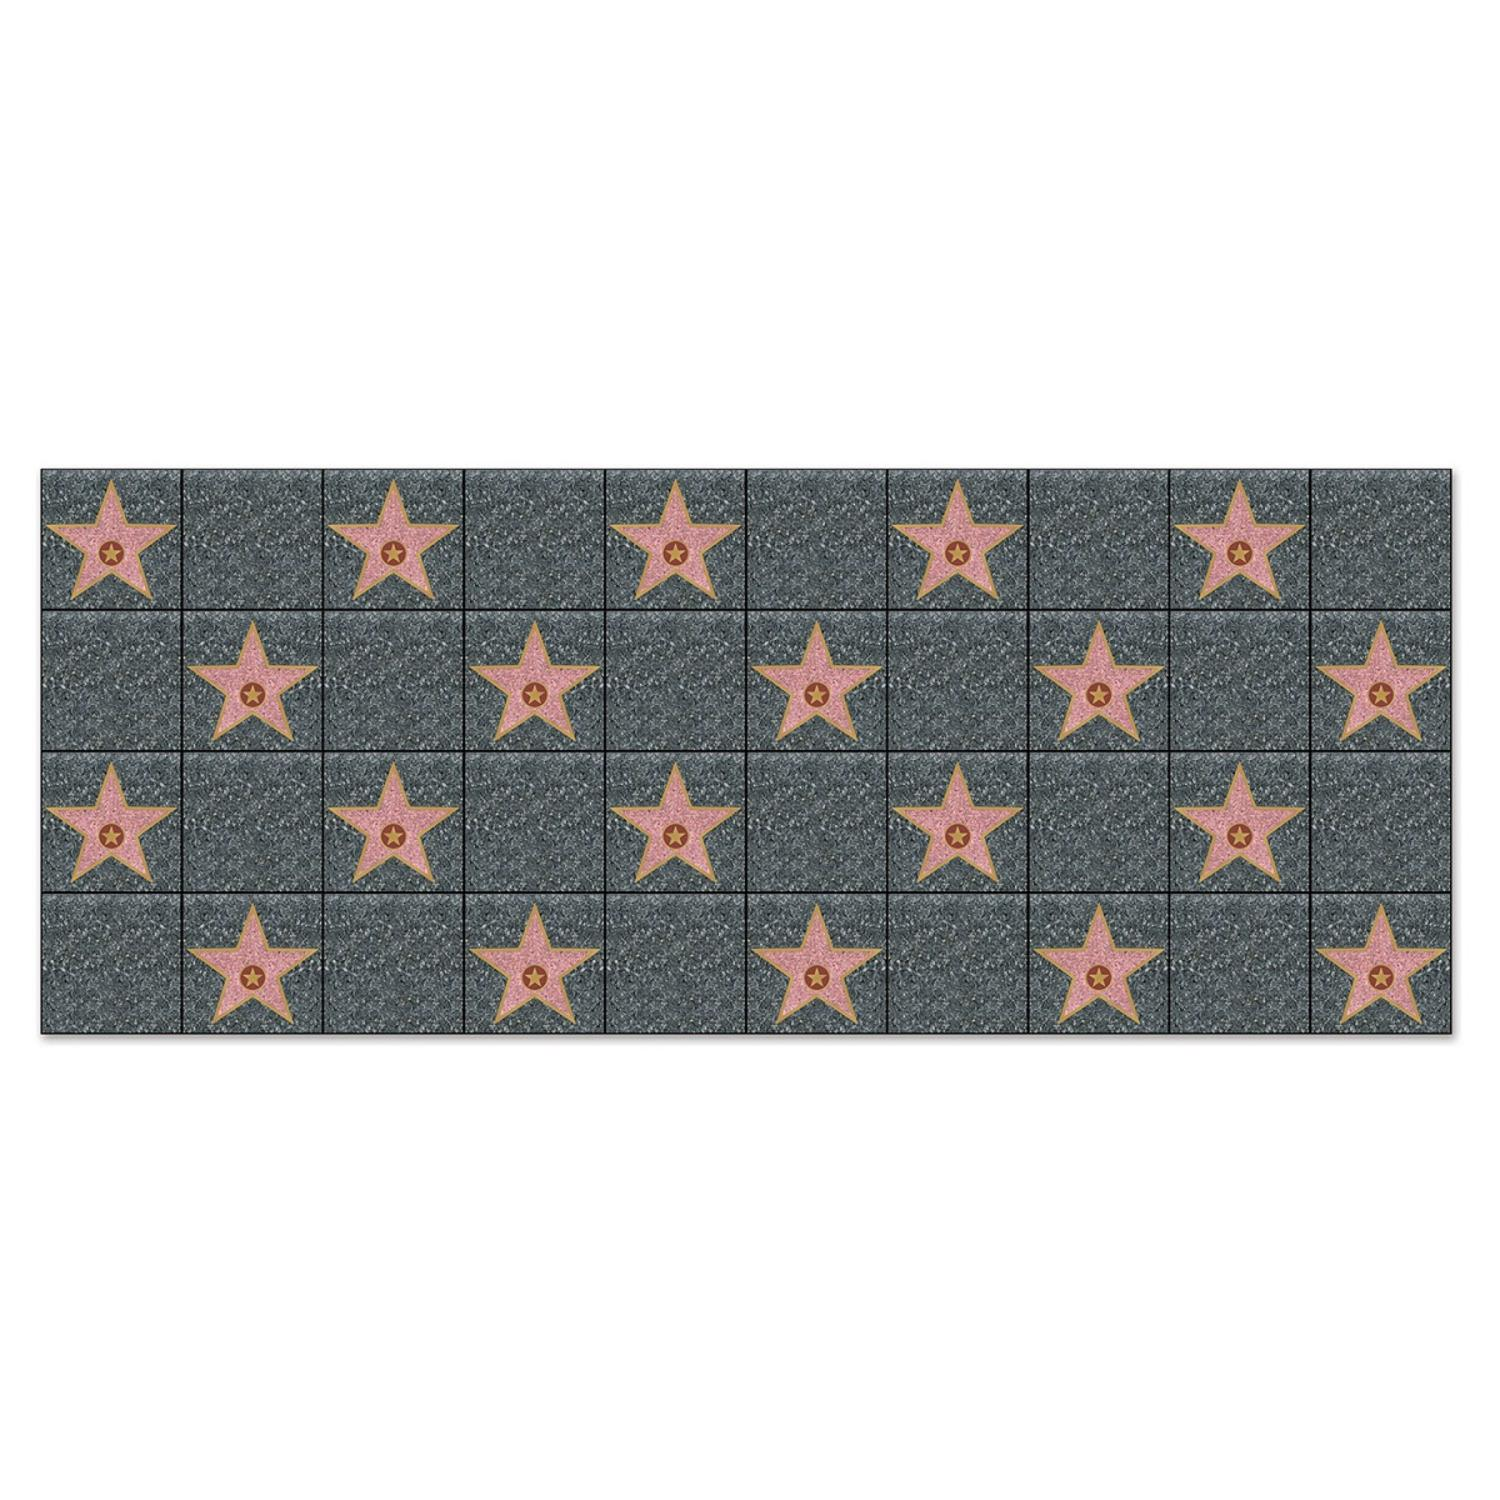 Pack of 6 Star Walk of Fame Photo Backdrop Party Decorations 30'